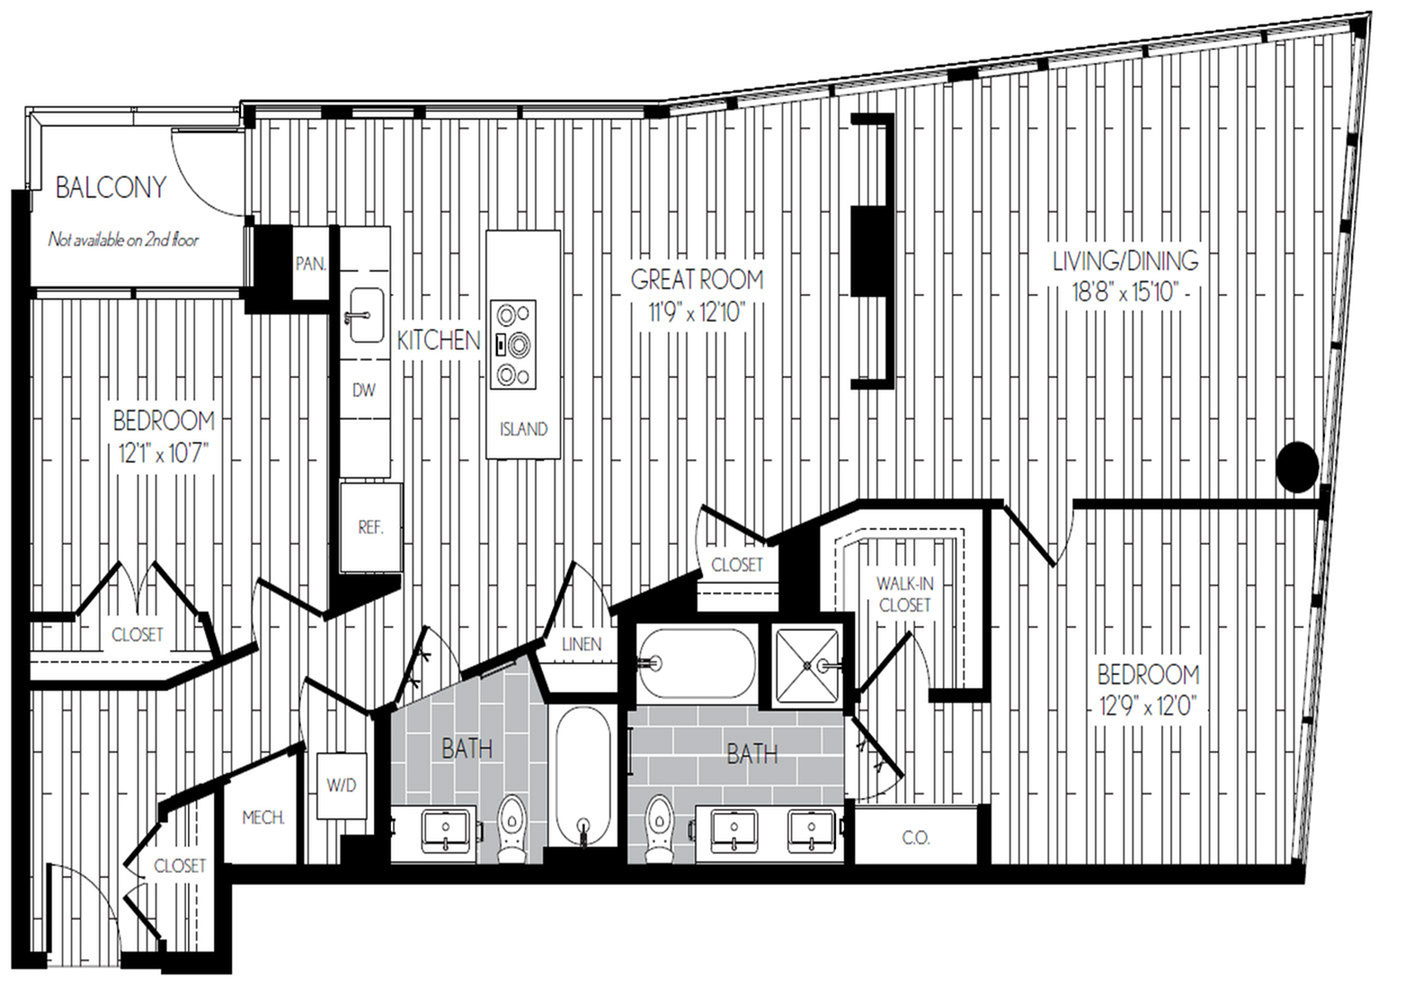 1391 square foot two bedroom two bath apartment floorplan image